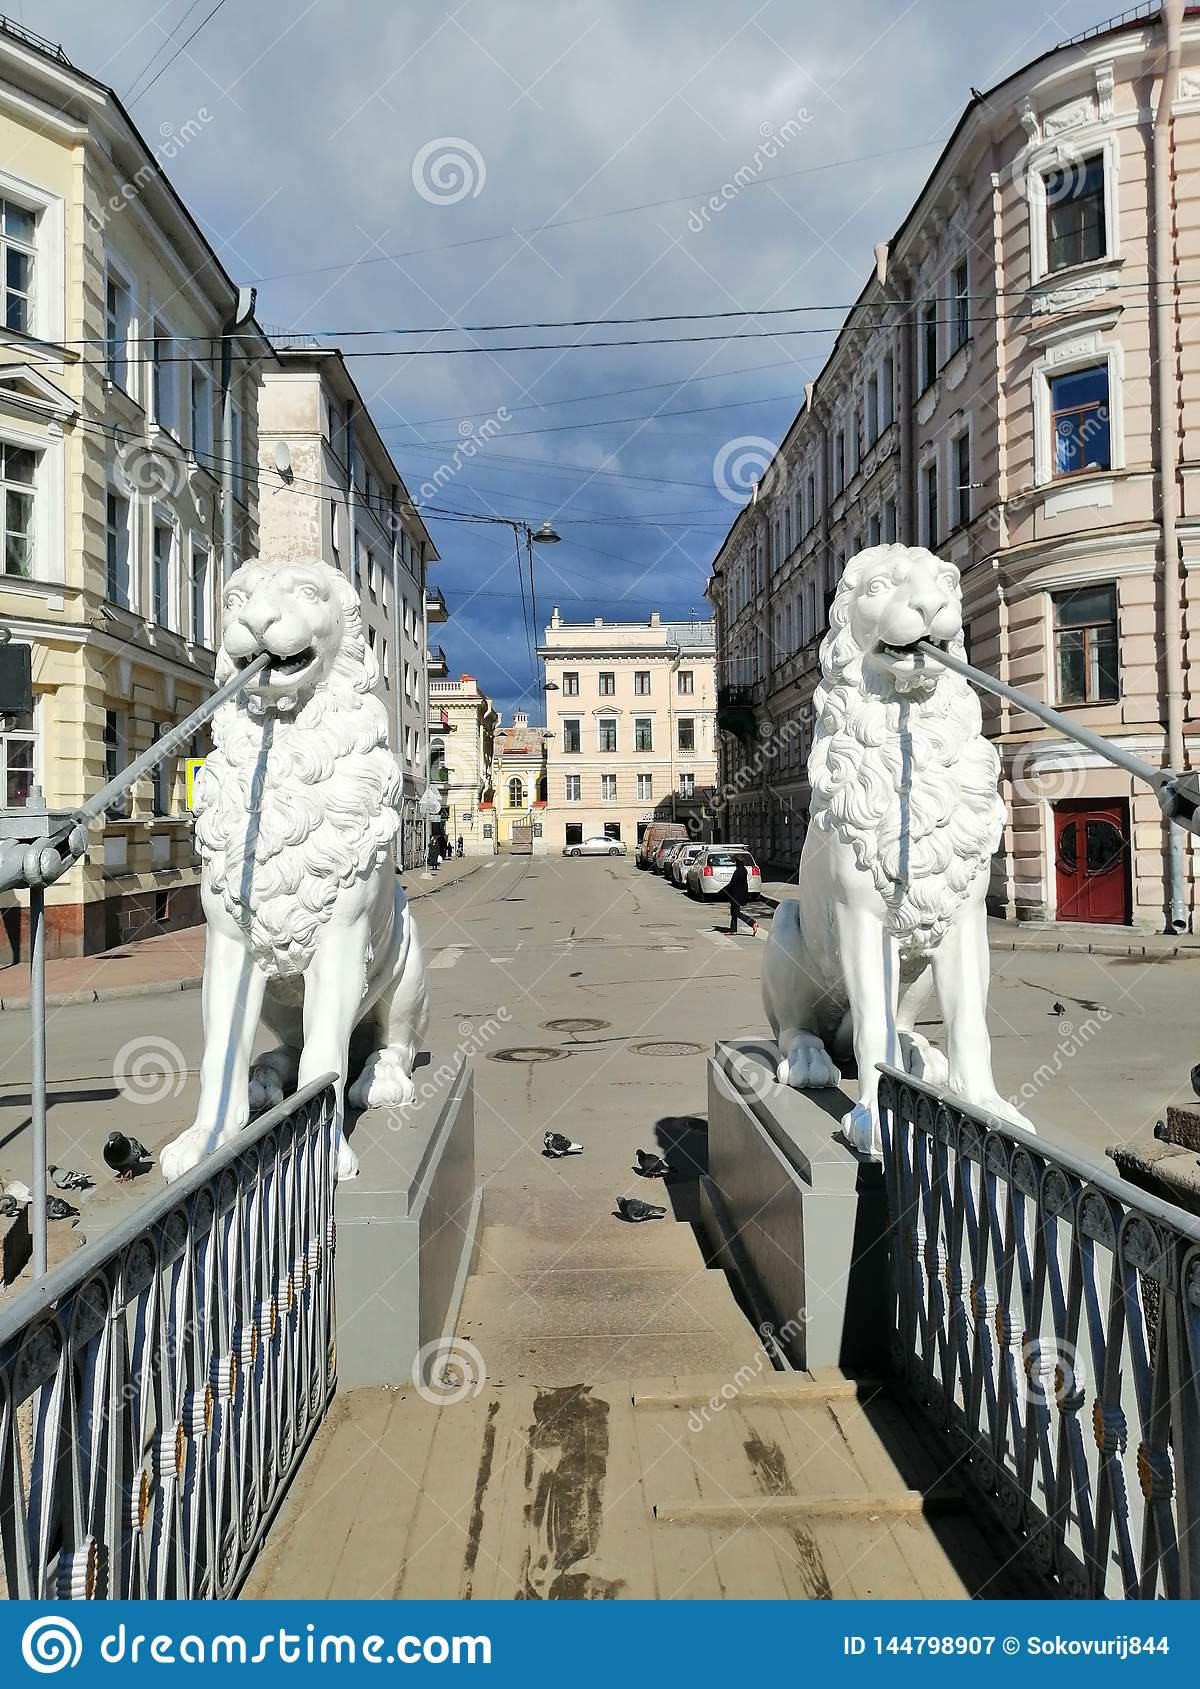 sculptures of lions holding the fence of the bridge